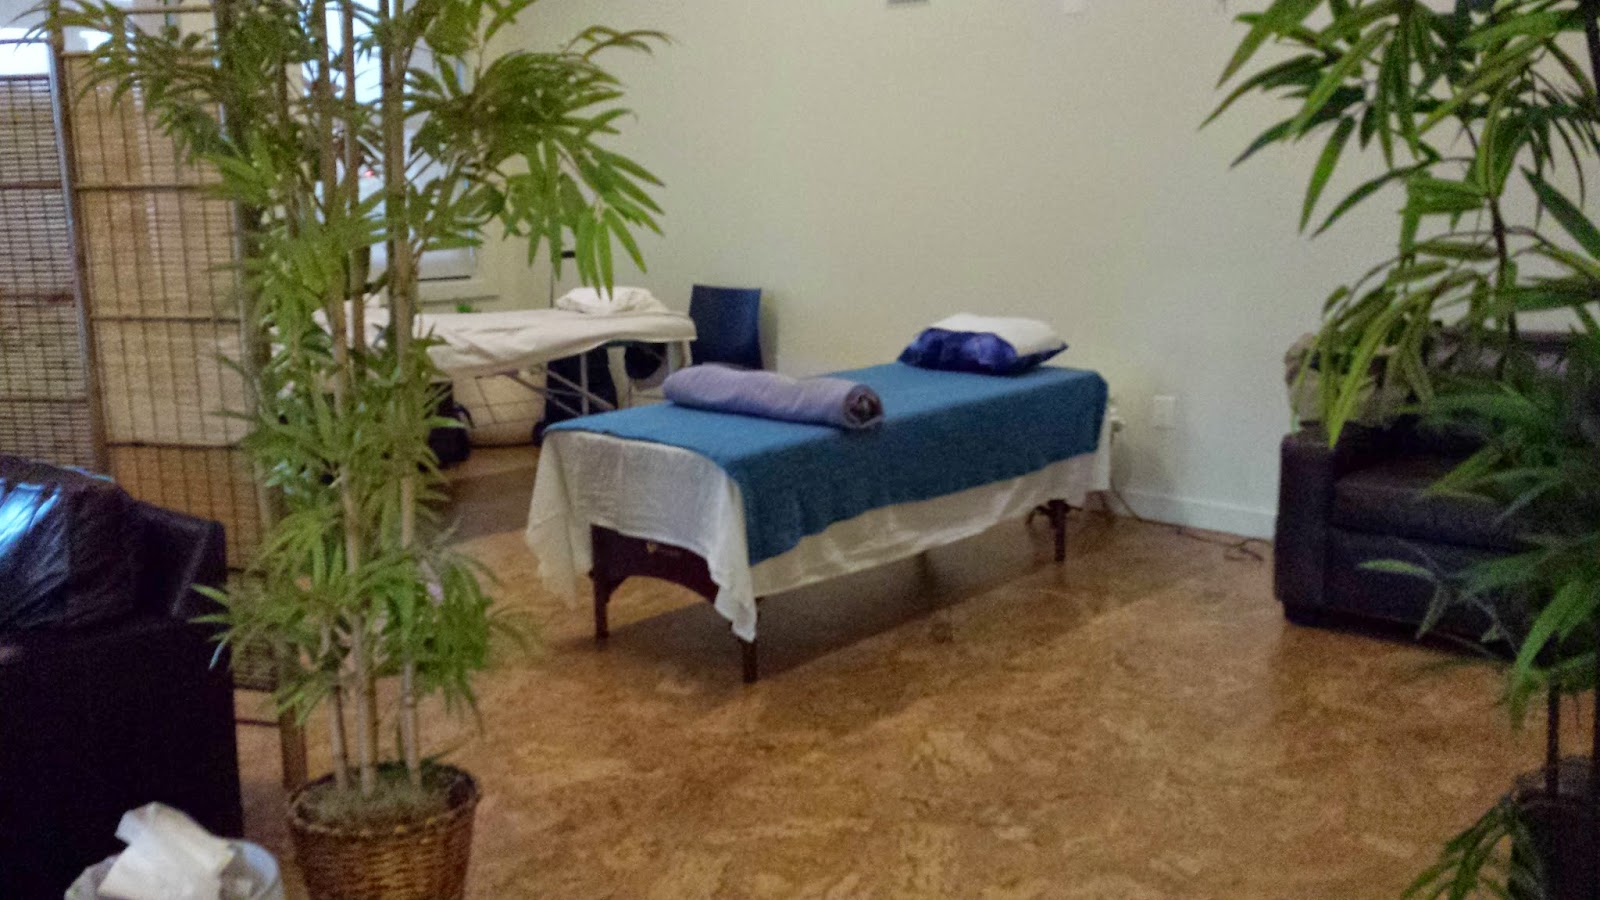 Reiki Provides Relaxation Treatment to Those with PTSD | Hope for